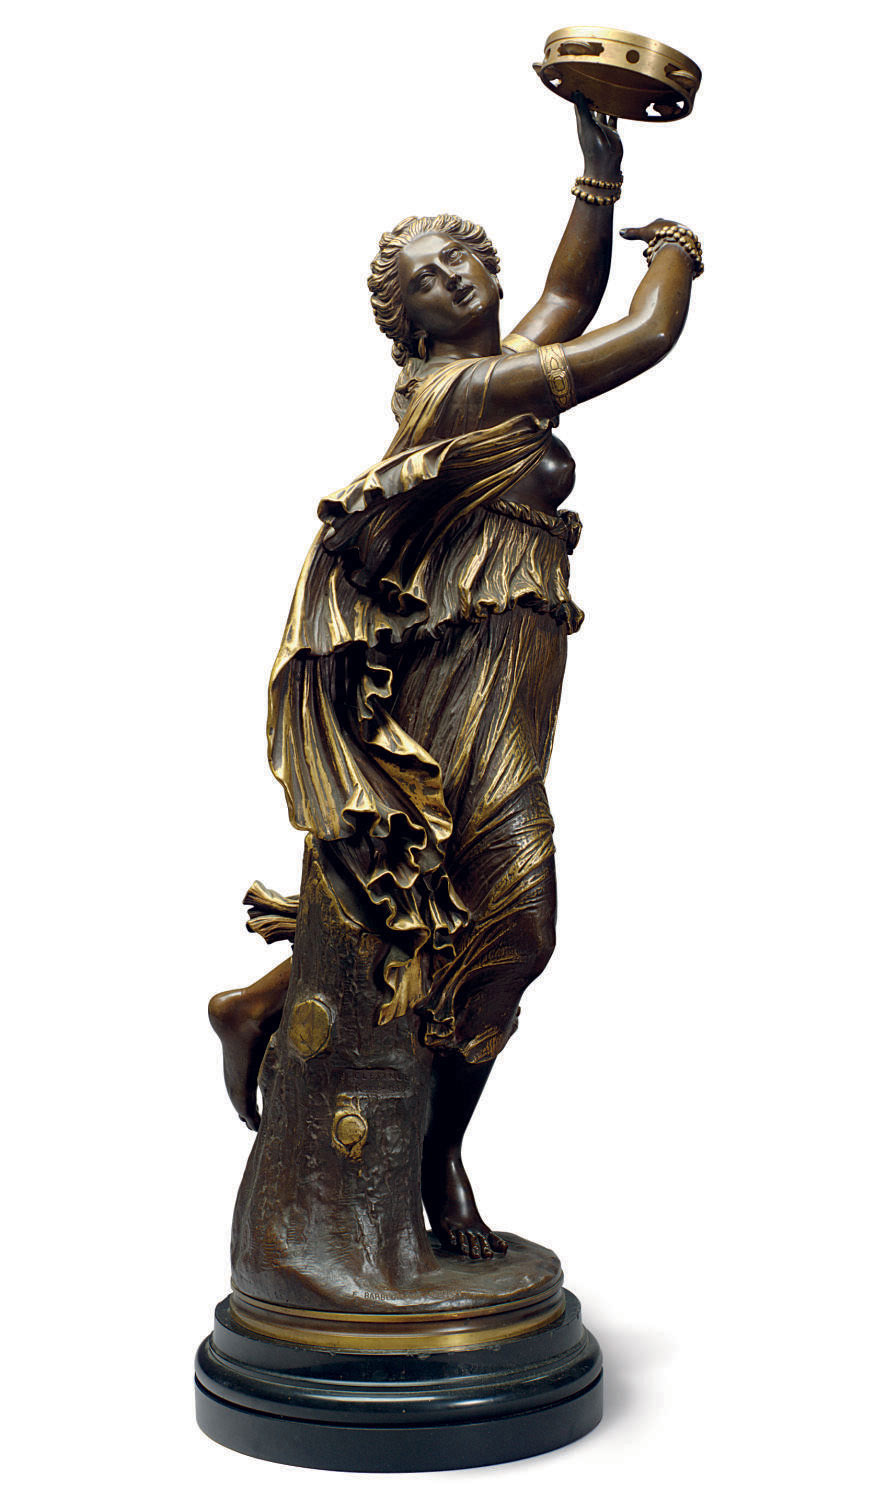 A FRENCH PARCEL-GILT AND PATINATED BRONZE FIGURE OF A DANCER ENTITLED 'ZINGARA'